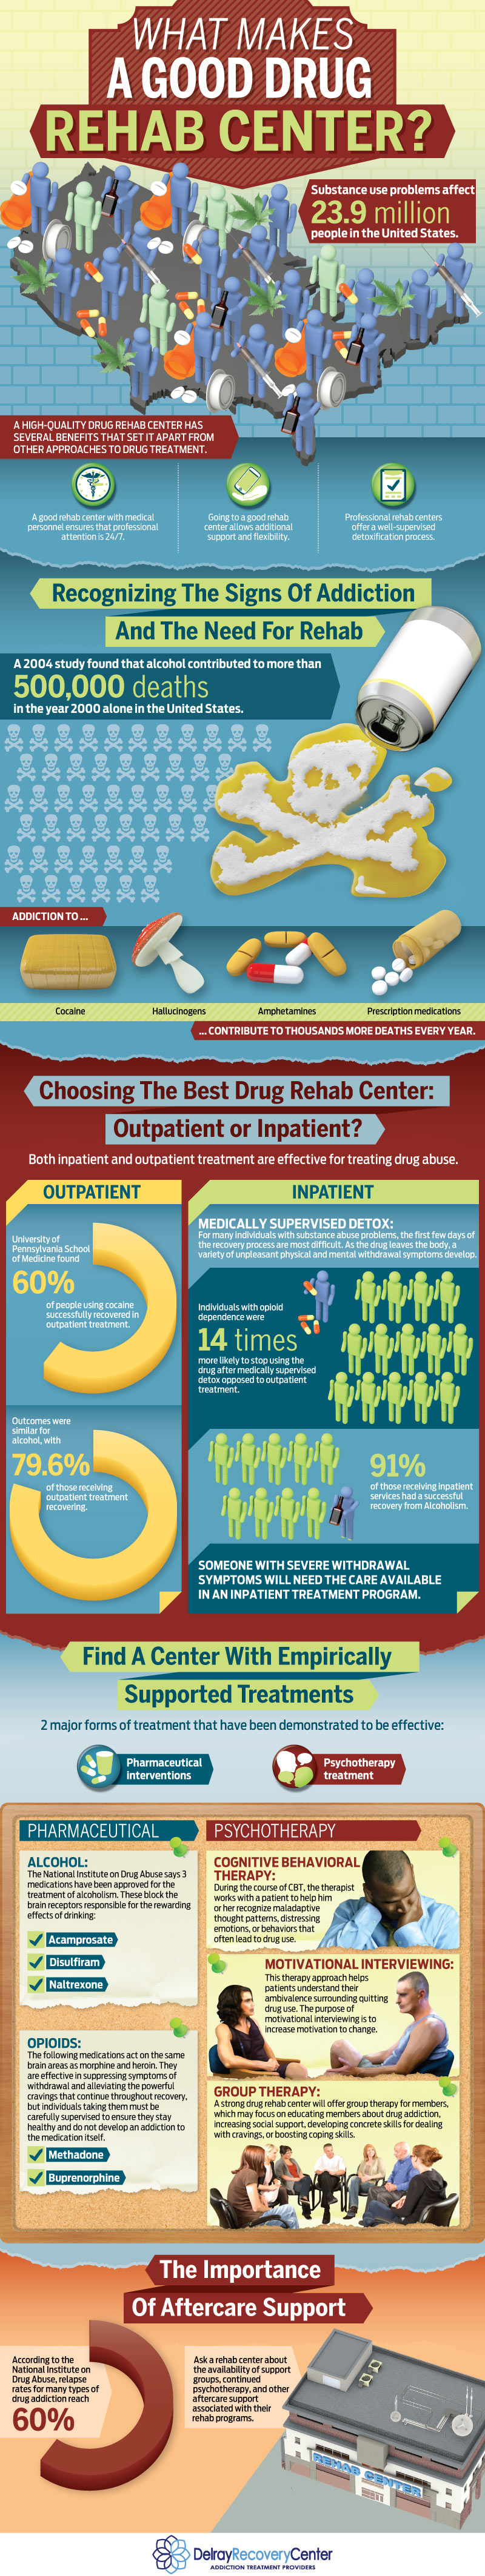 What Makes A Good Drug Rehab Center Infographic